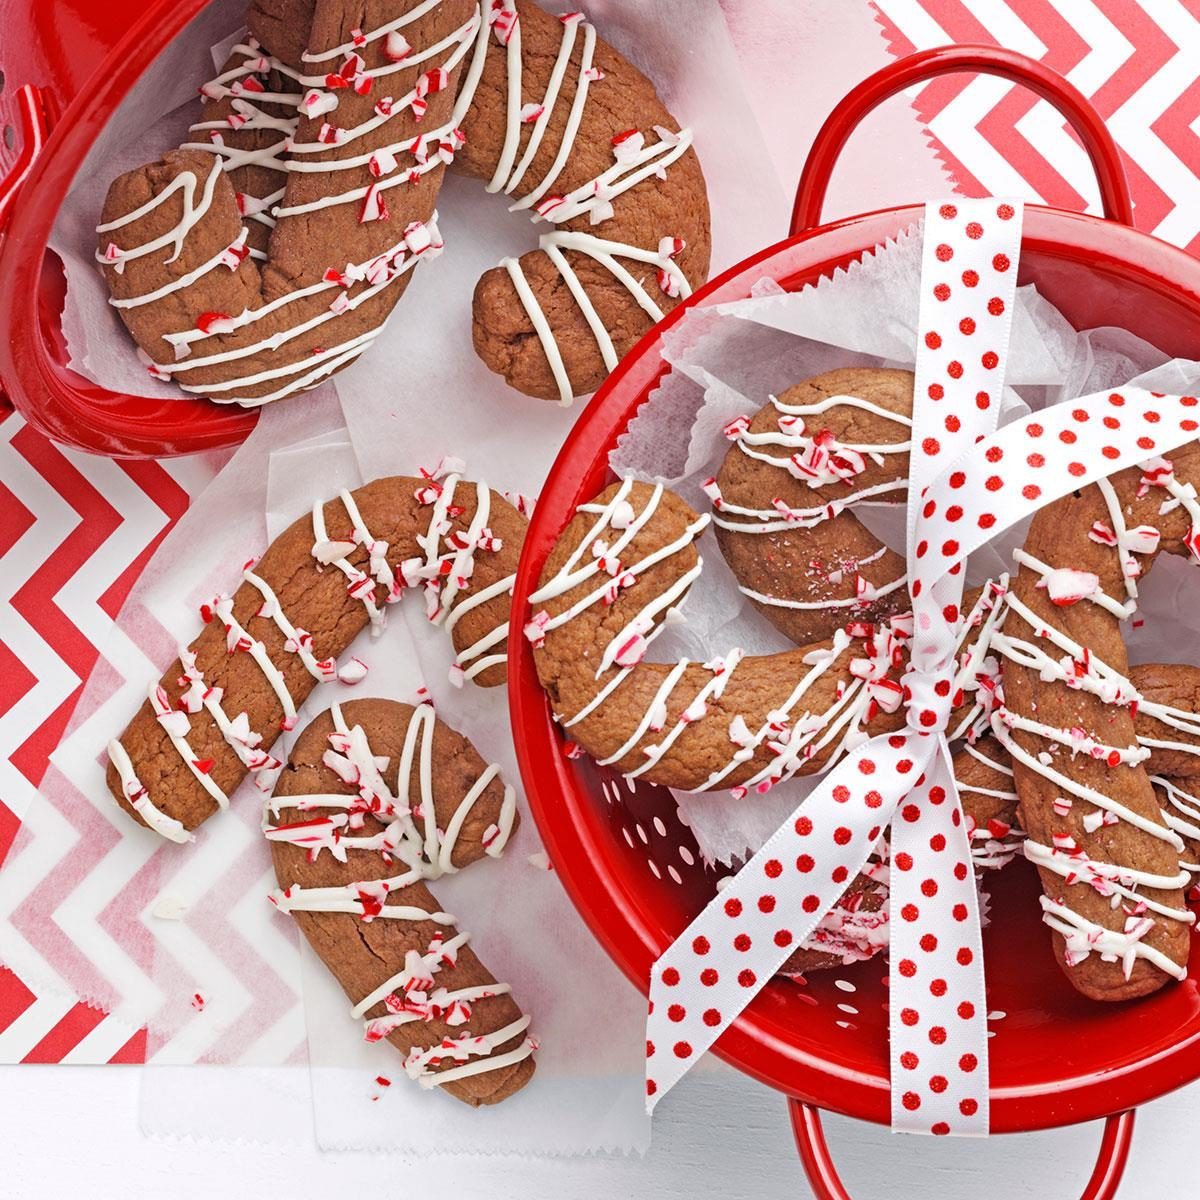 Chocolate Candy Cane Cookies Recipe | Taste of Home